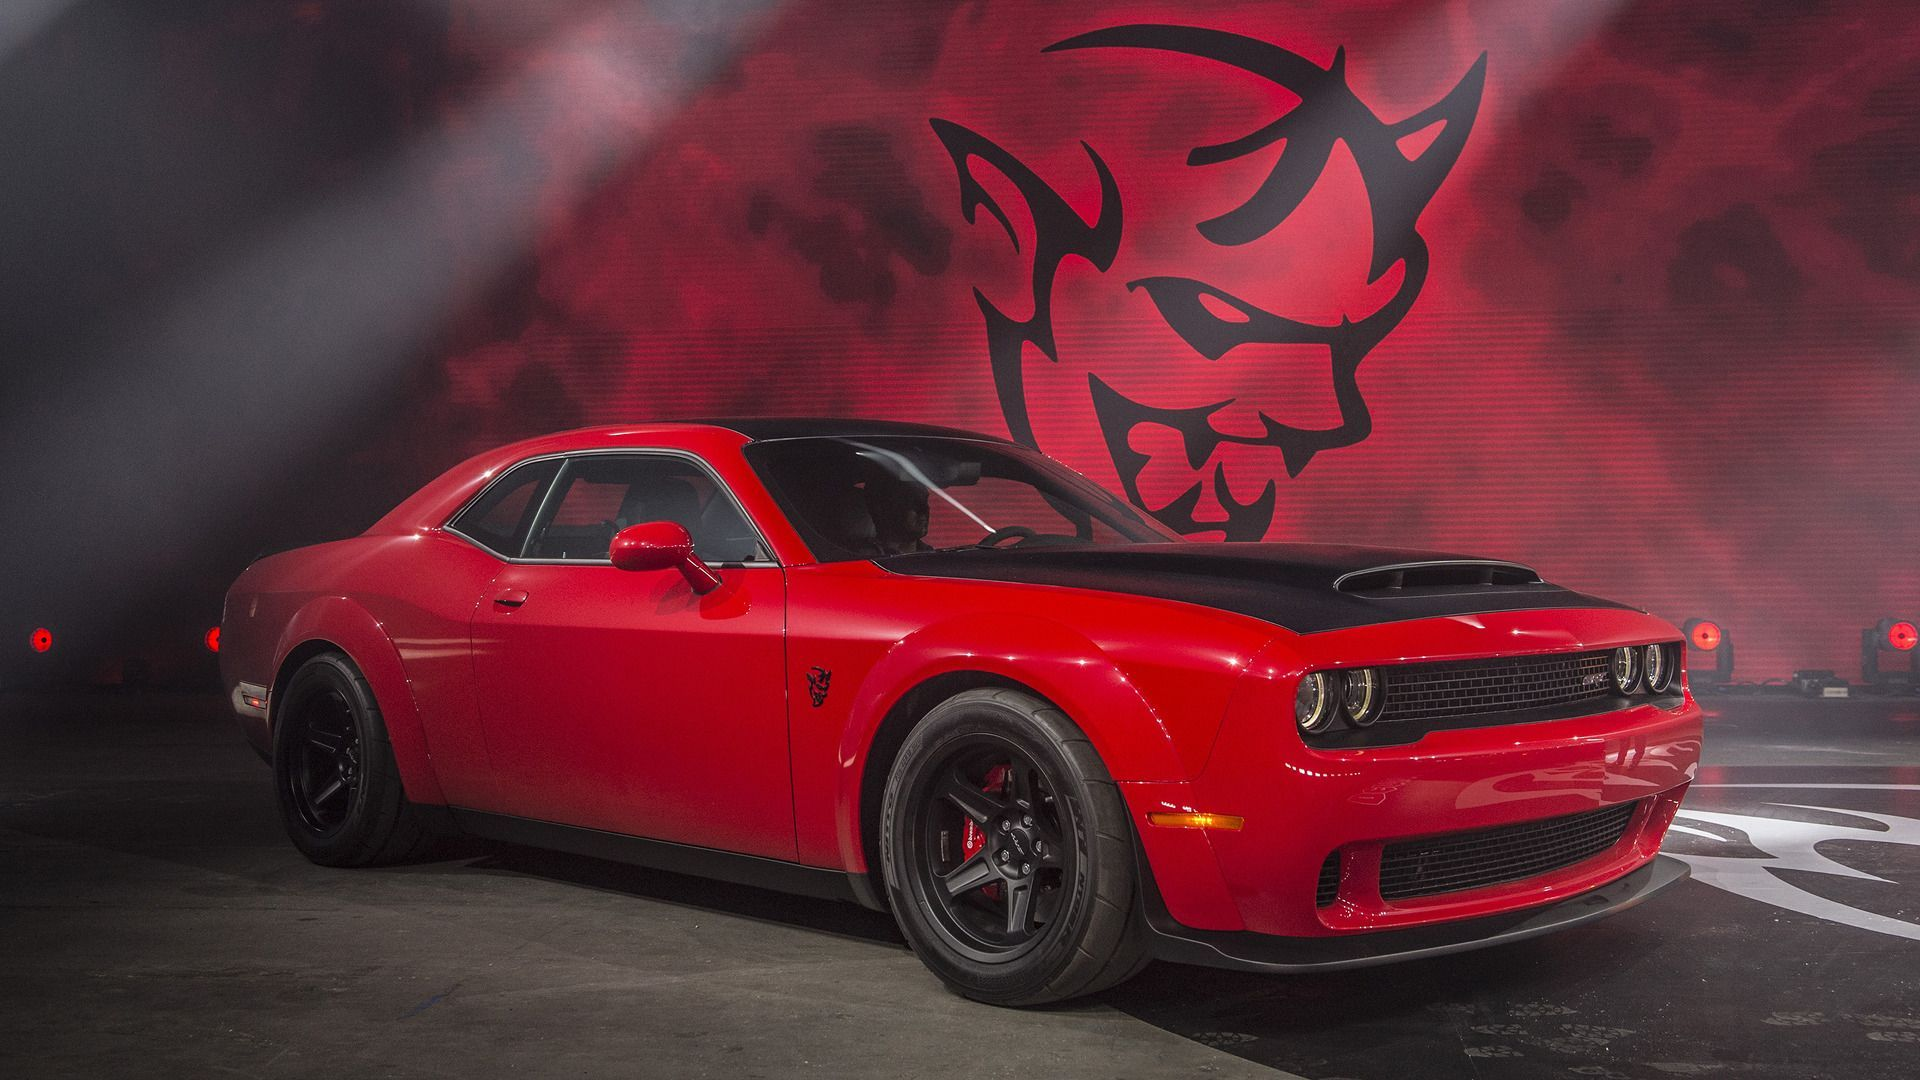 Give Your Car a Cool Look With Dodge Demon wallpaper